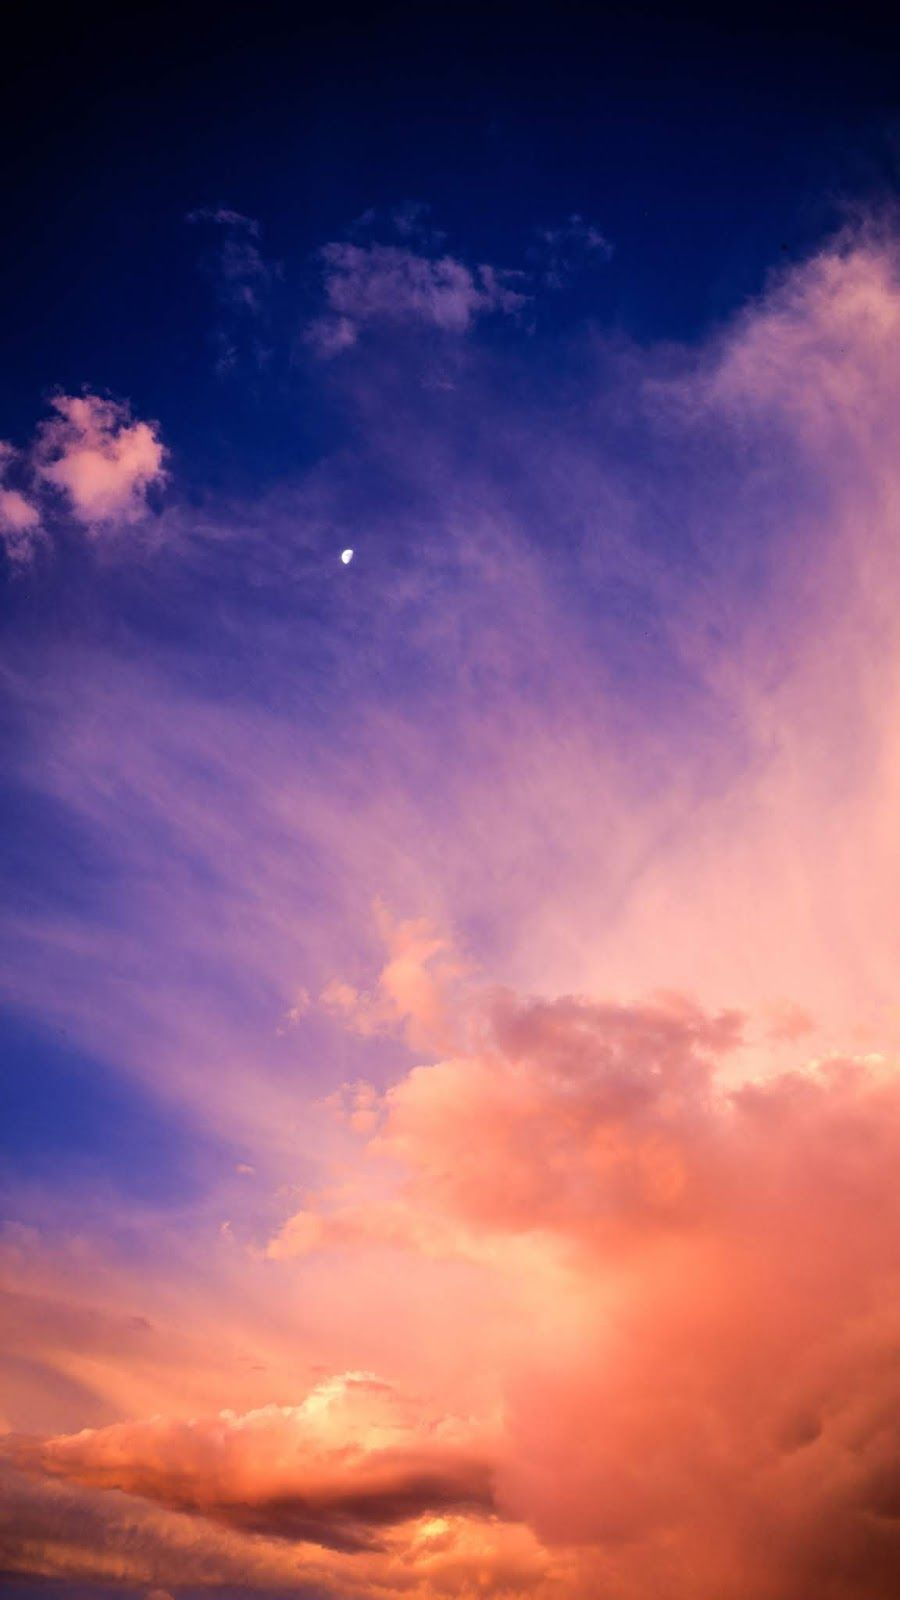 Twilight Sky Wallpaper Iphone Android Background Followme Twilight Sky Night Sky Wallpaper Sky Aesthetic